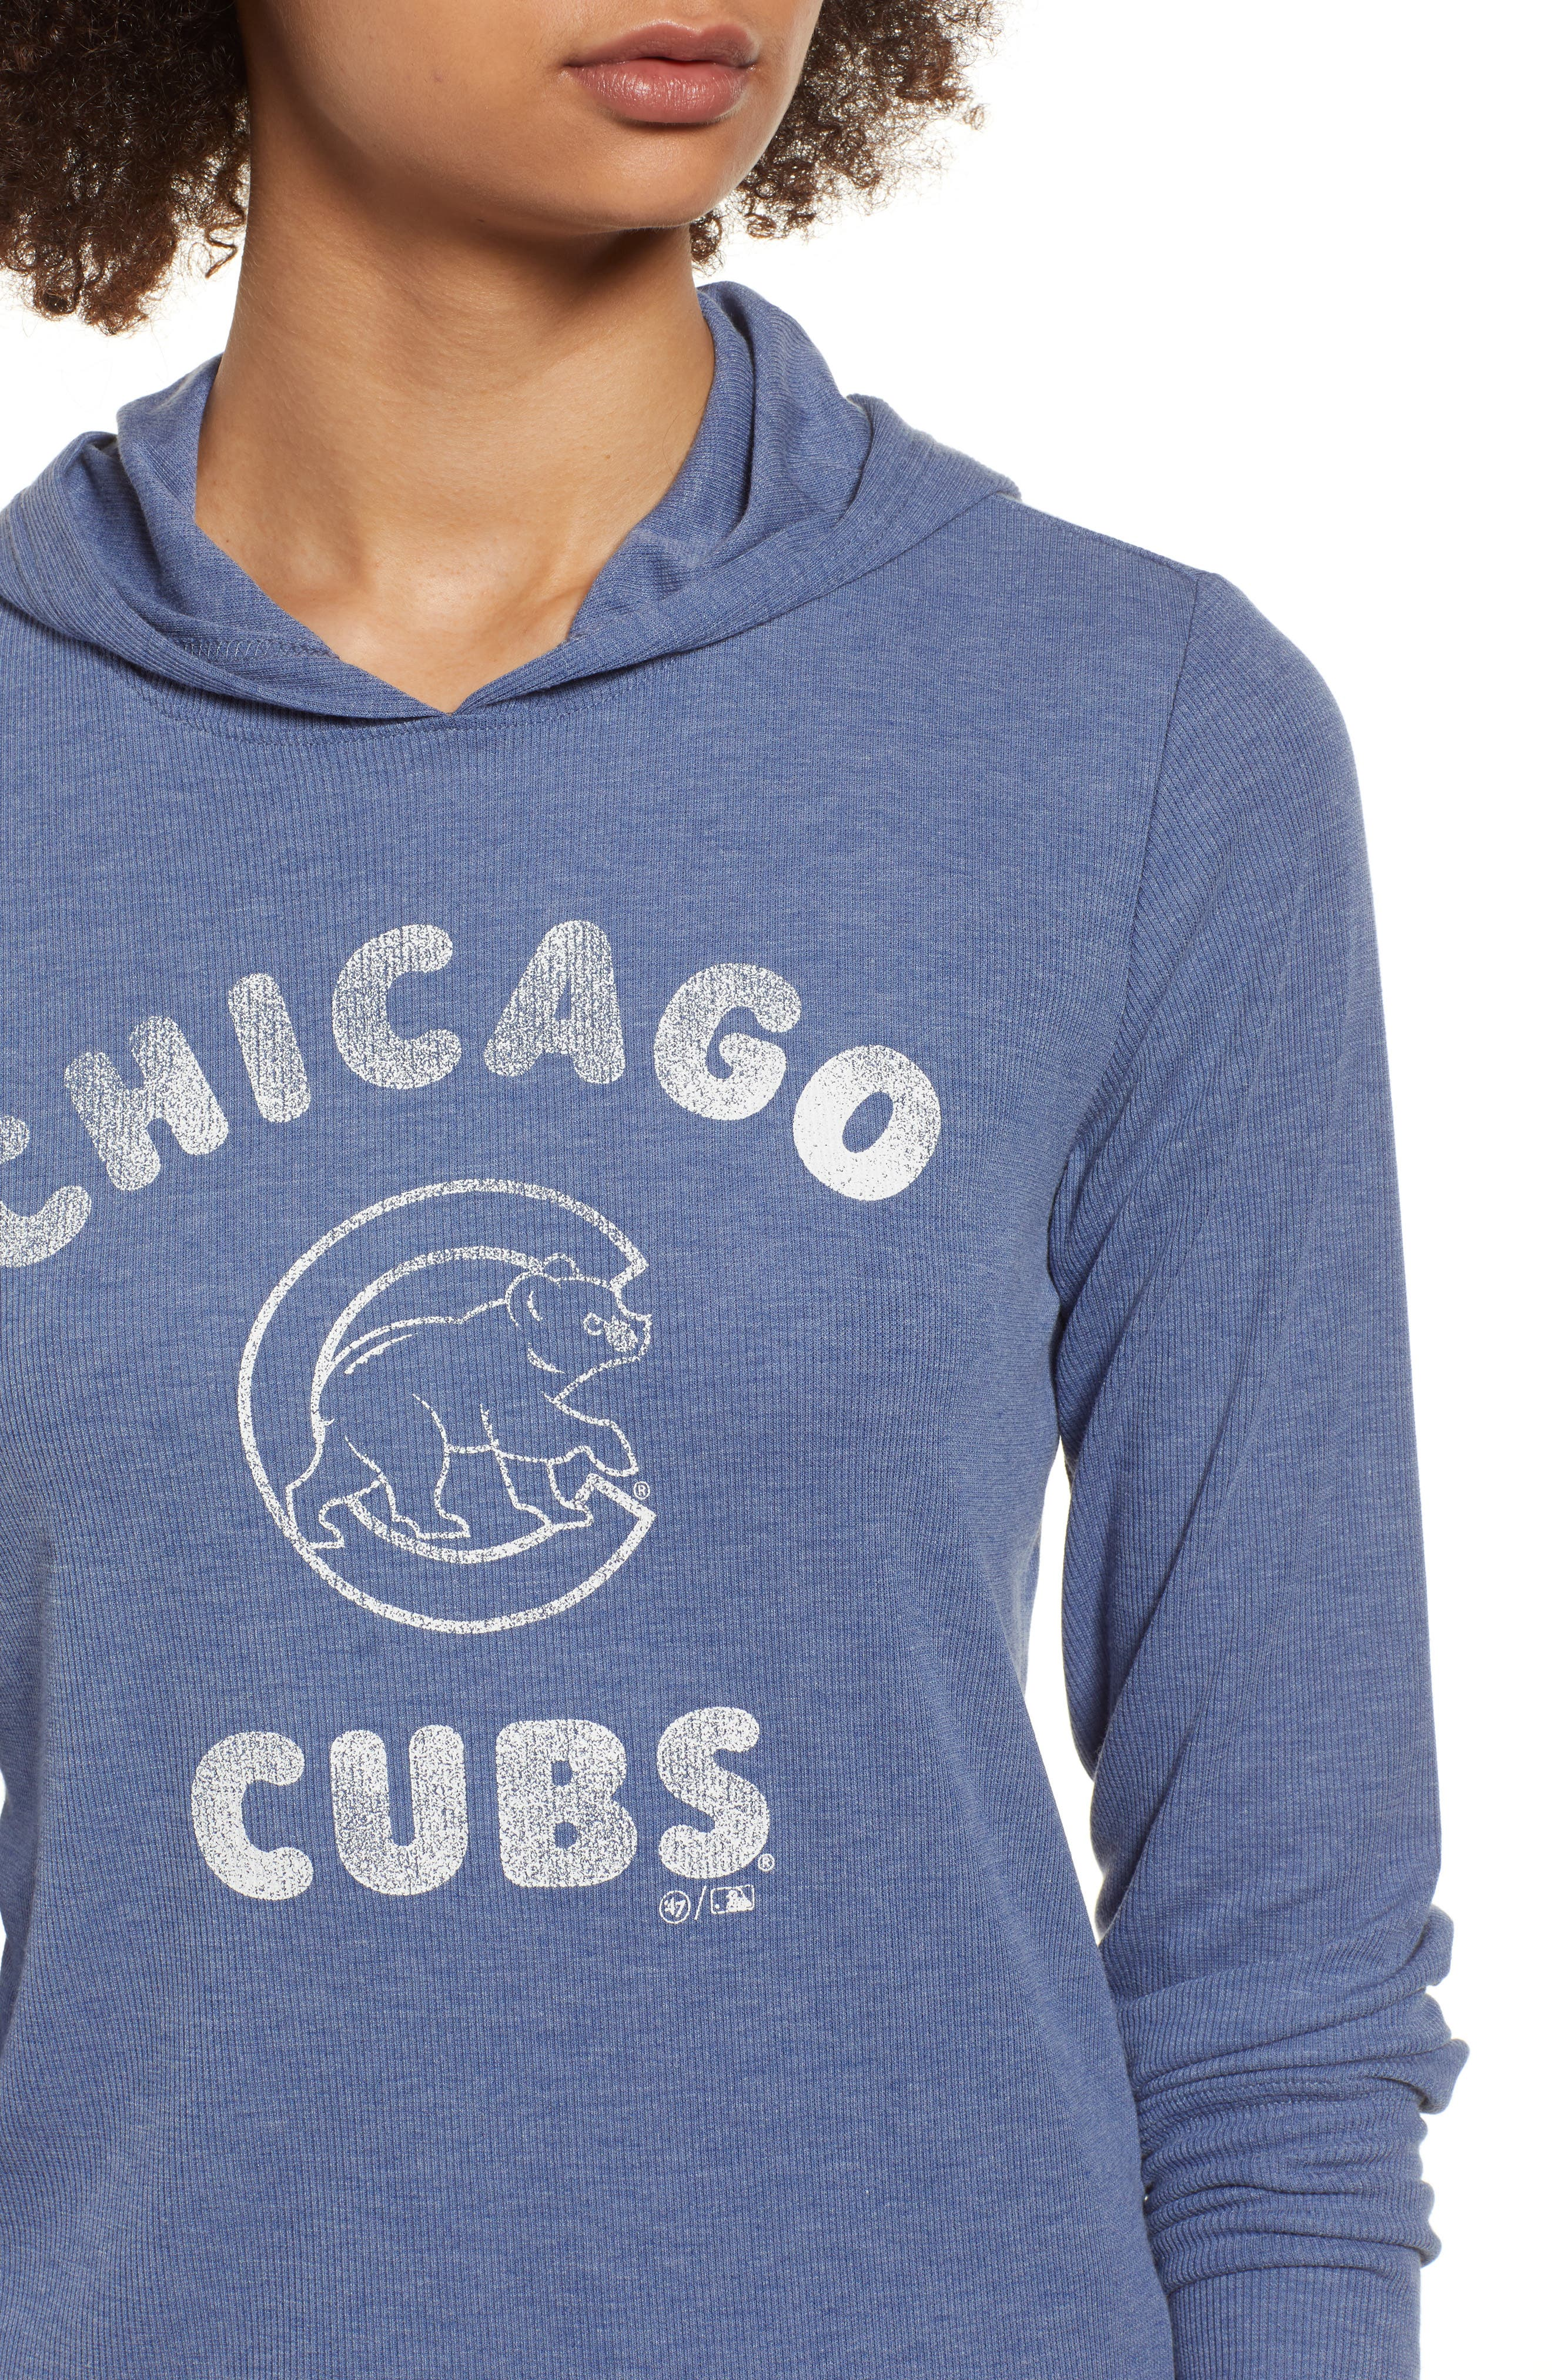 Campbell Chicago Cubs Rib Knit Hoodie,                             Alternate thumbnail 4, color,                             Bleacher Blue